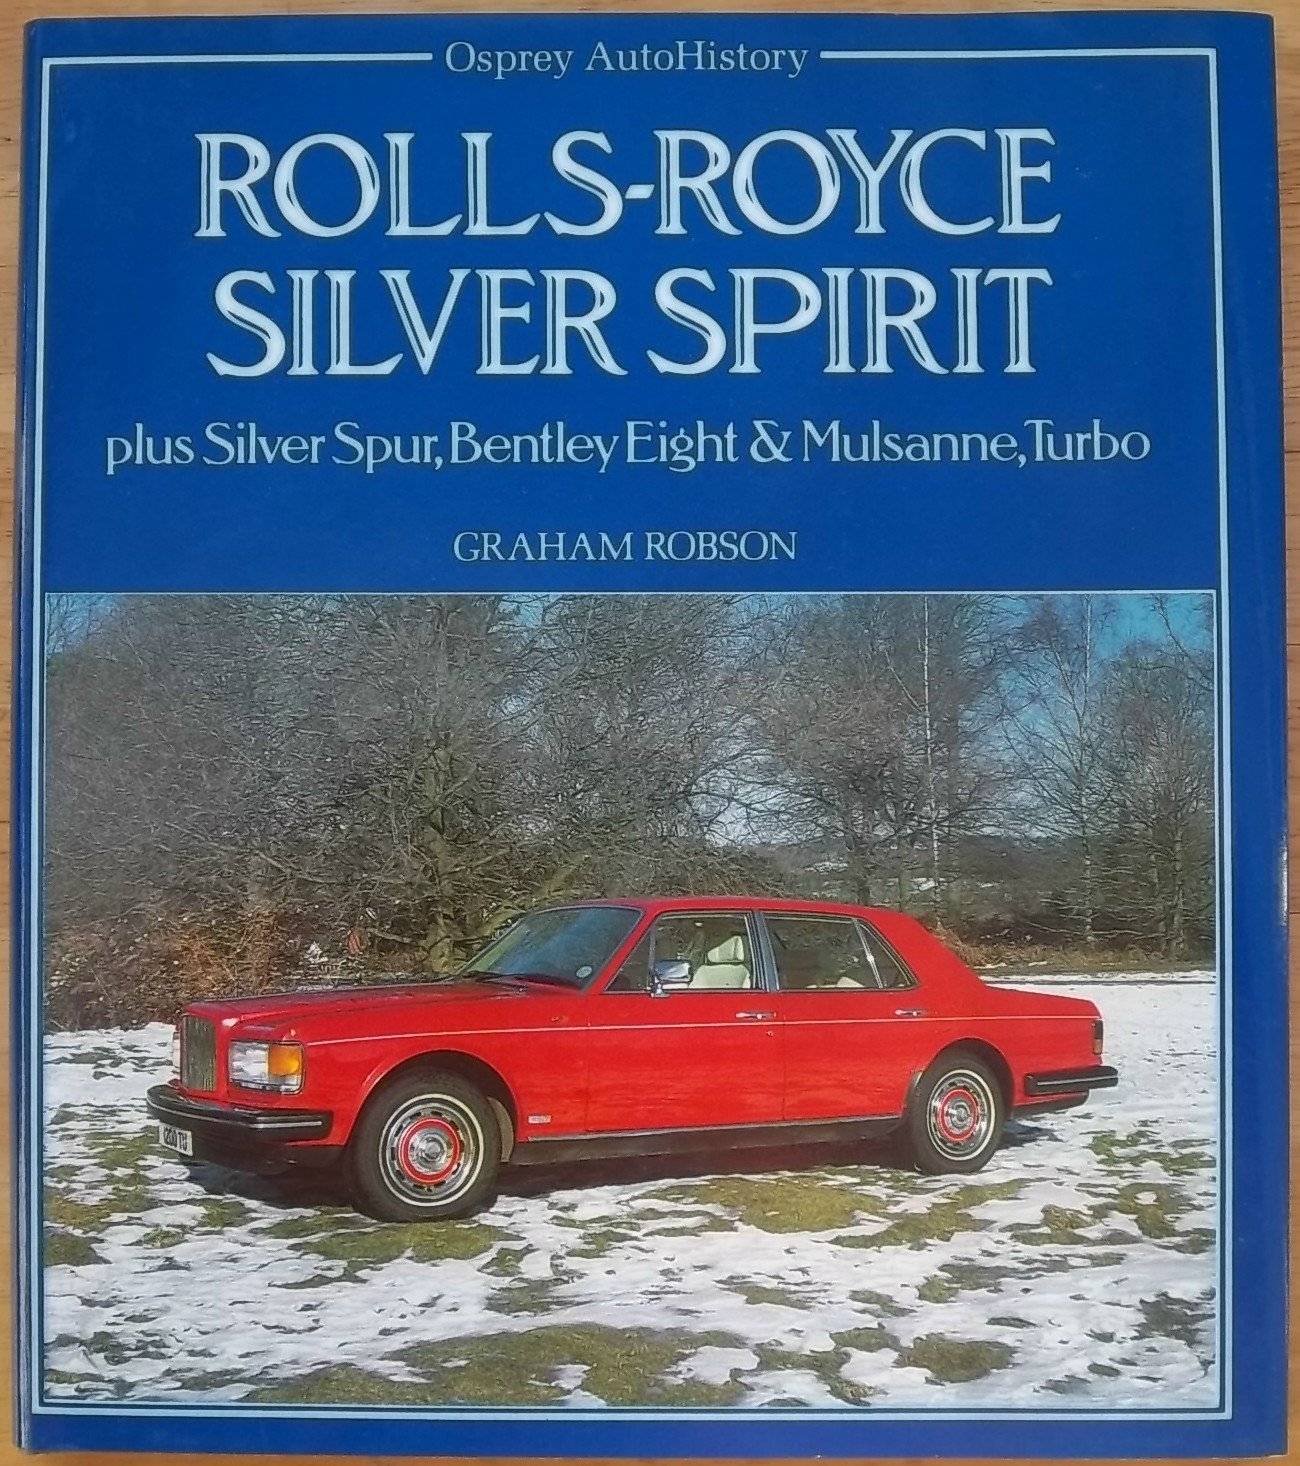 Rolls Royce Silver Spirit plus Silver Spur, Bentley Eight & Mulsanne, Turbo Hardcover – June 1, 1985